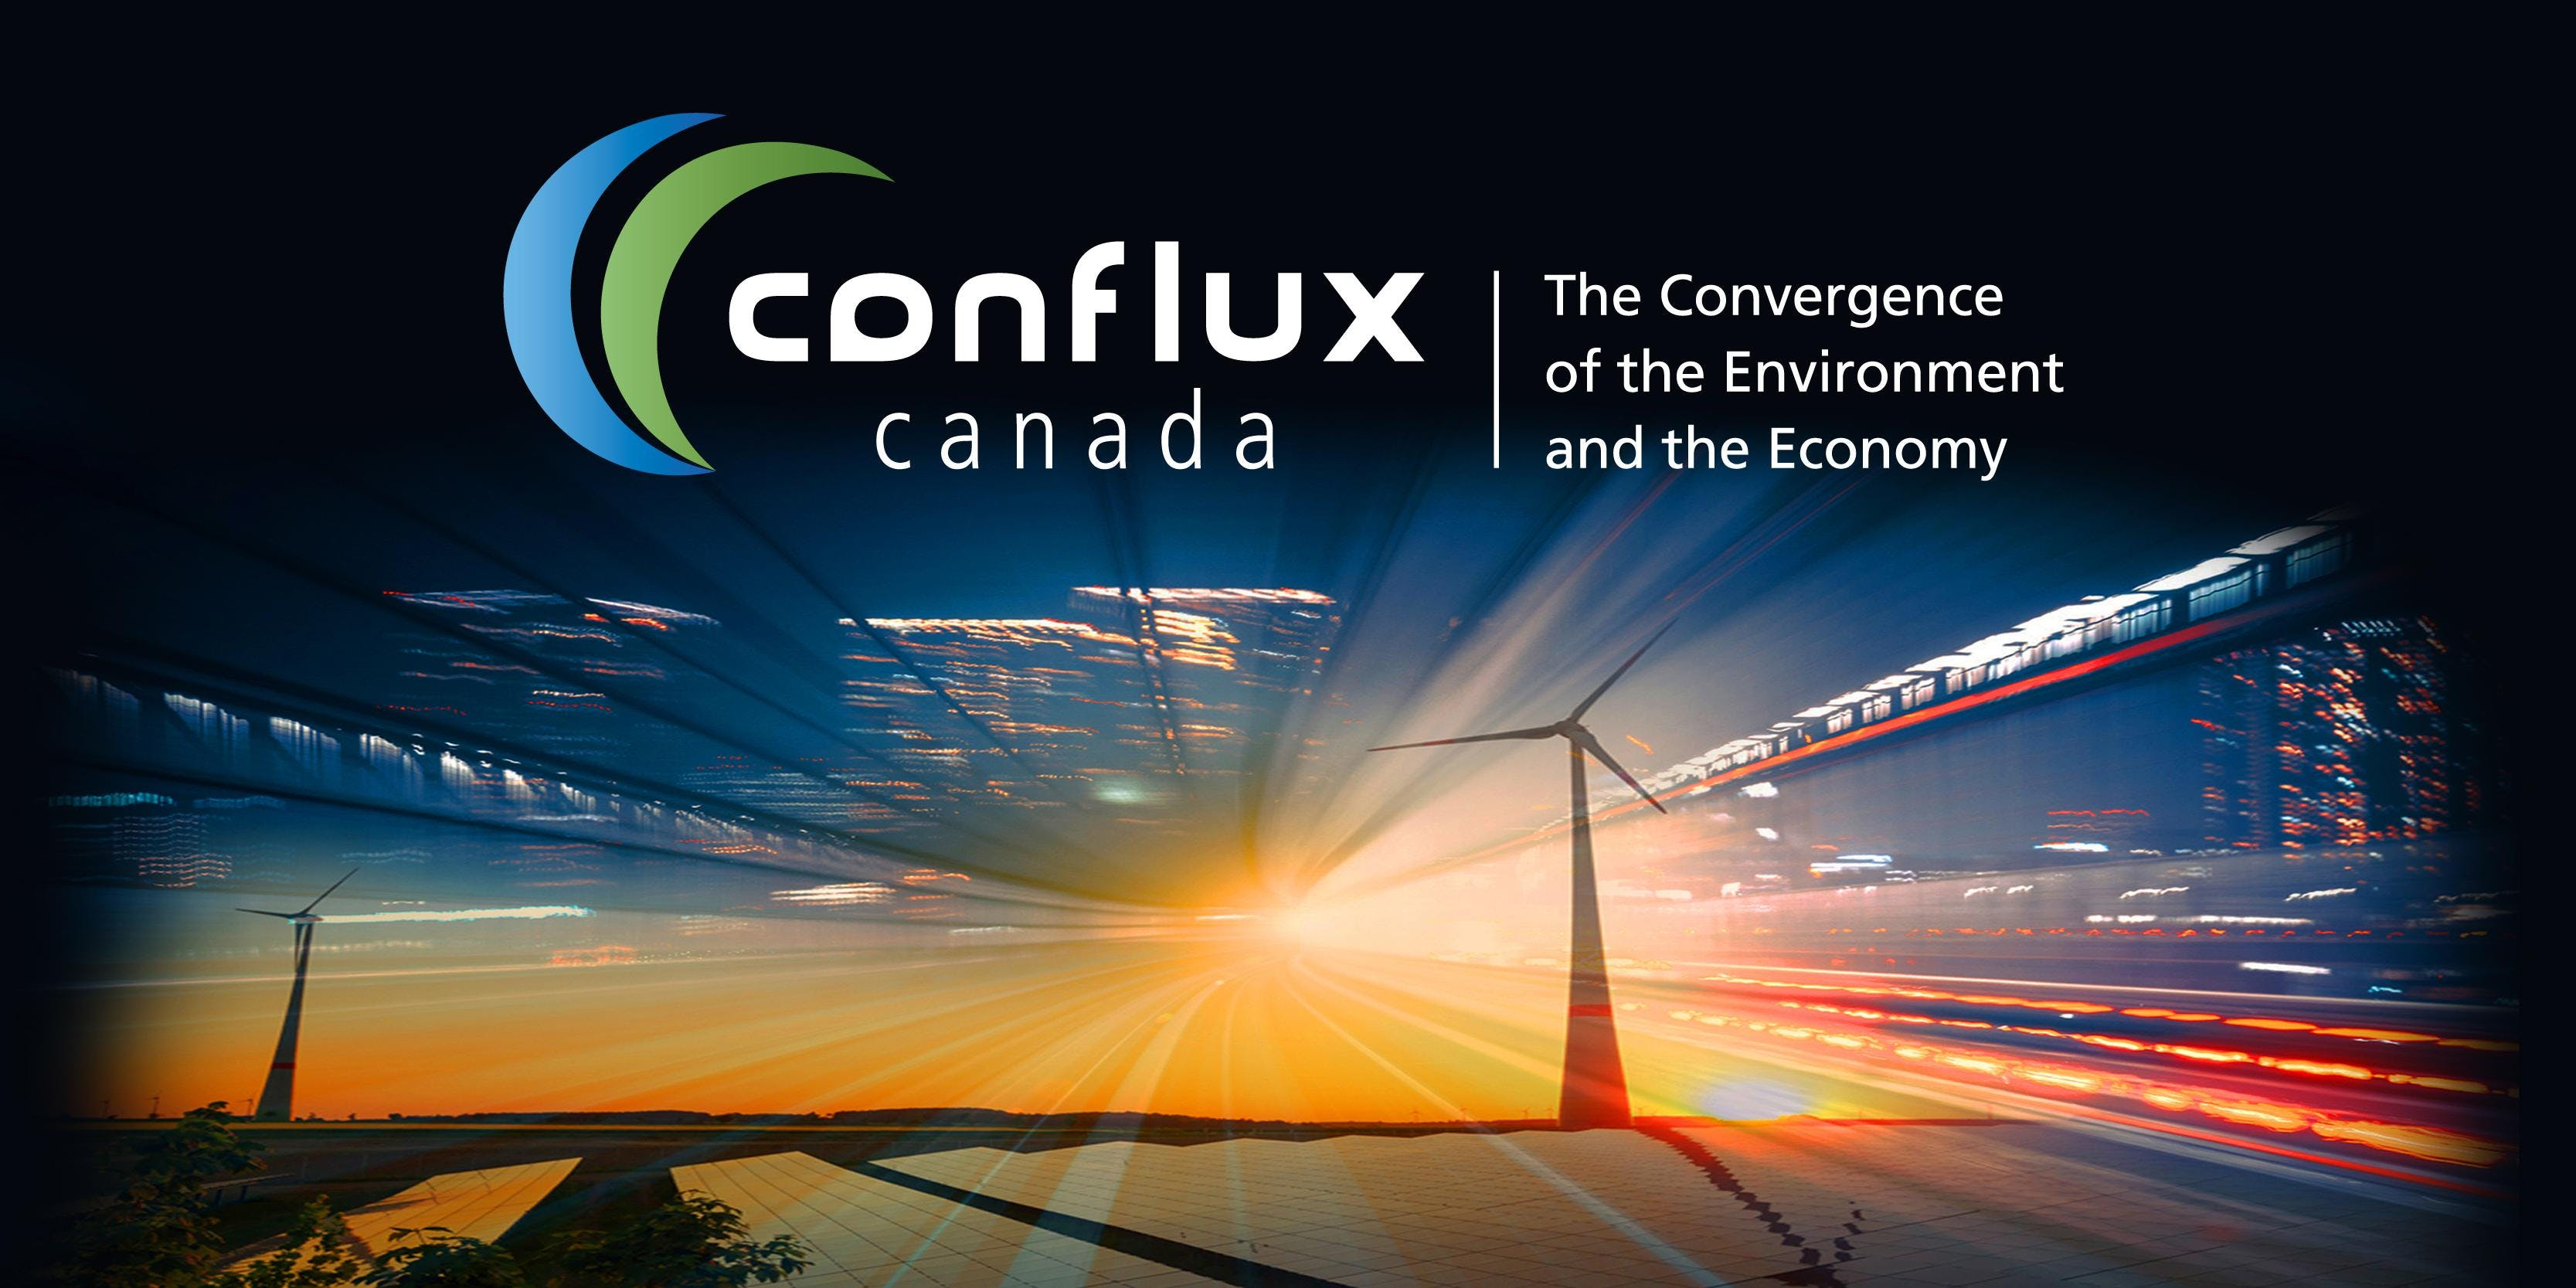 Conflux Canada -  The Convergence of the Envi